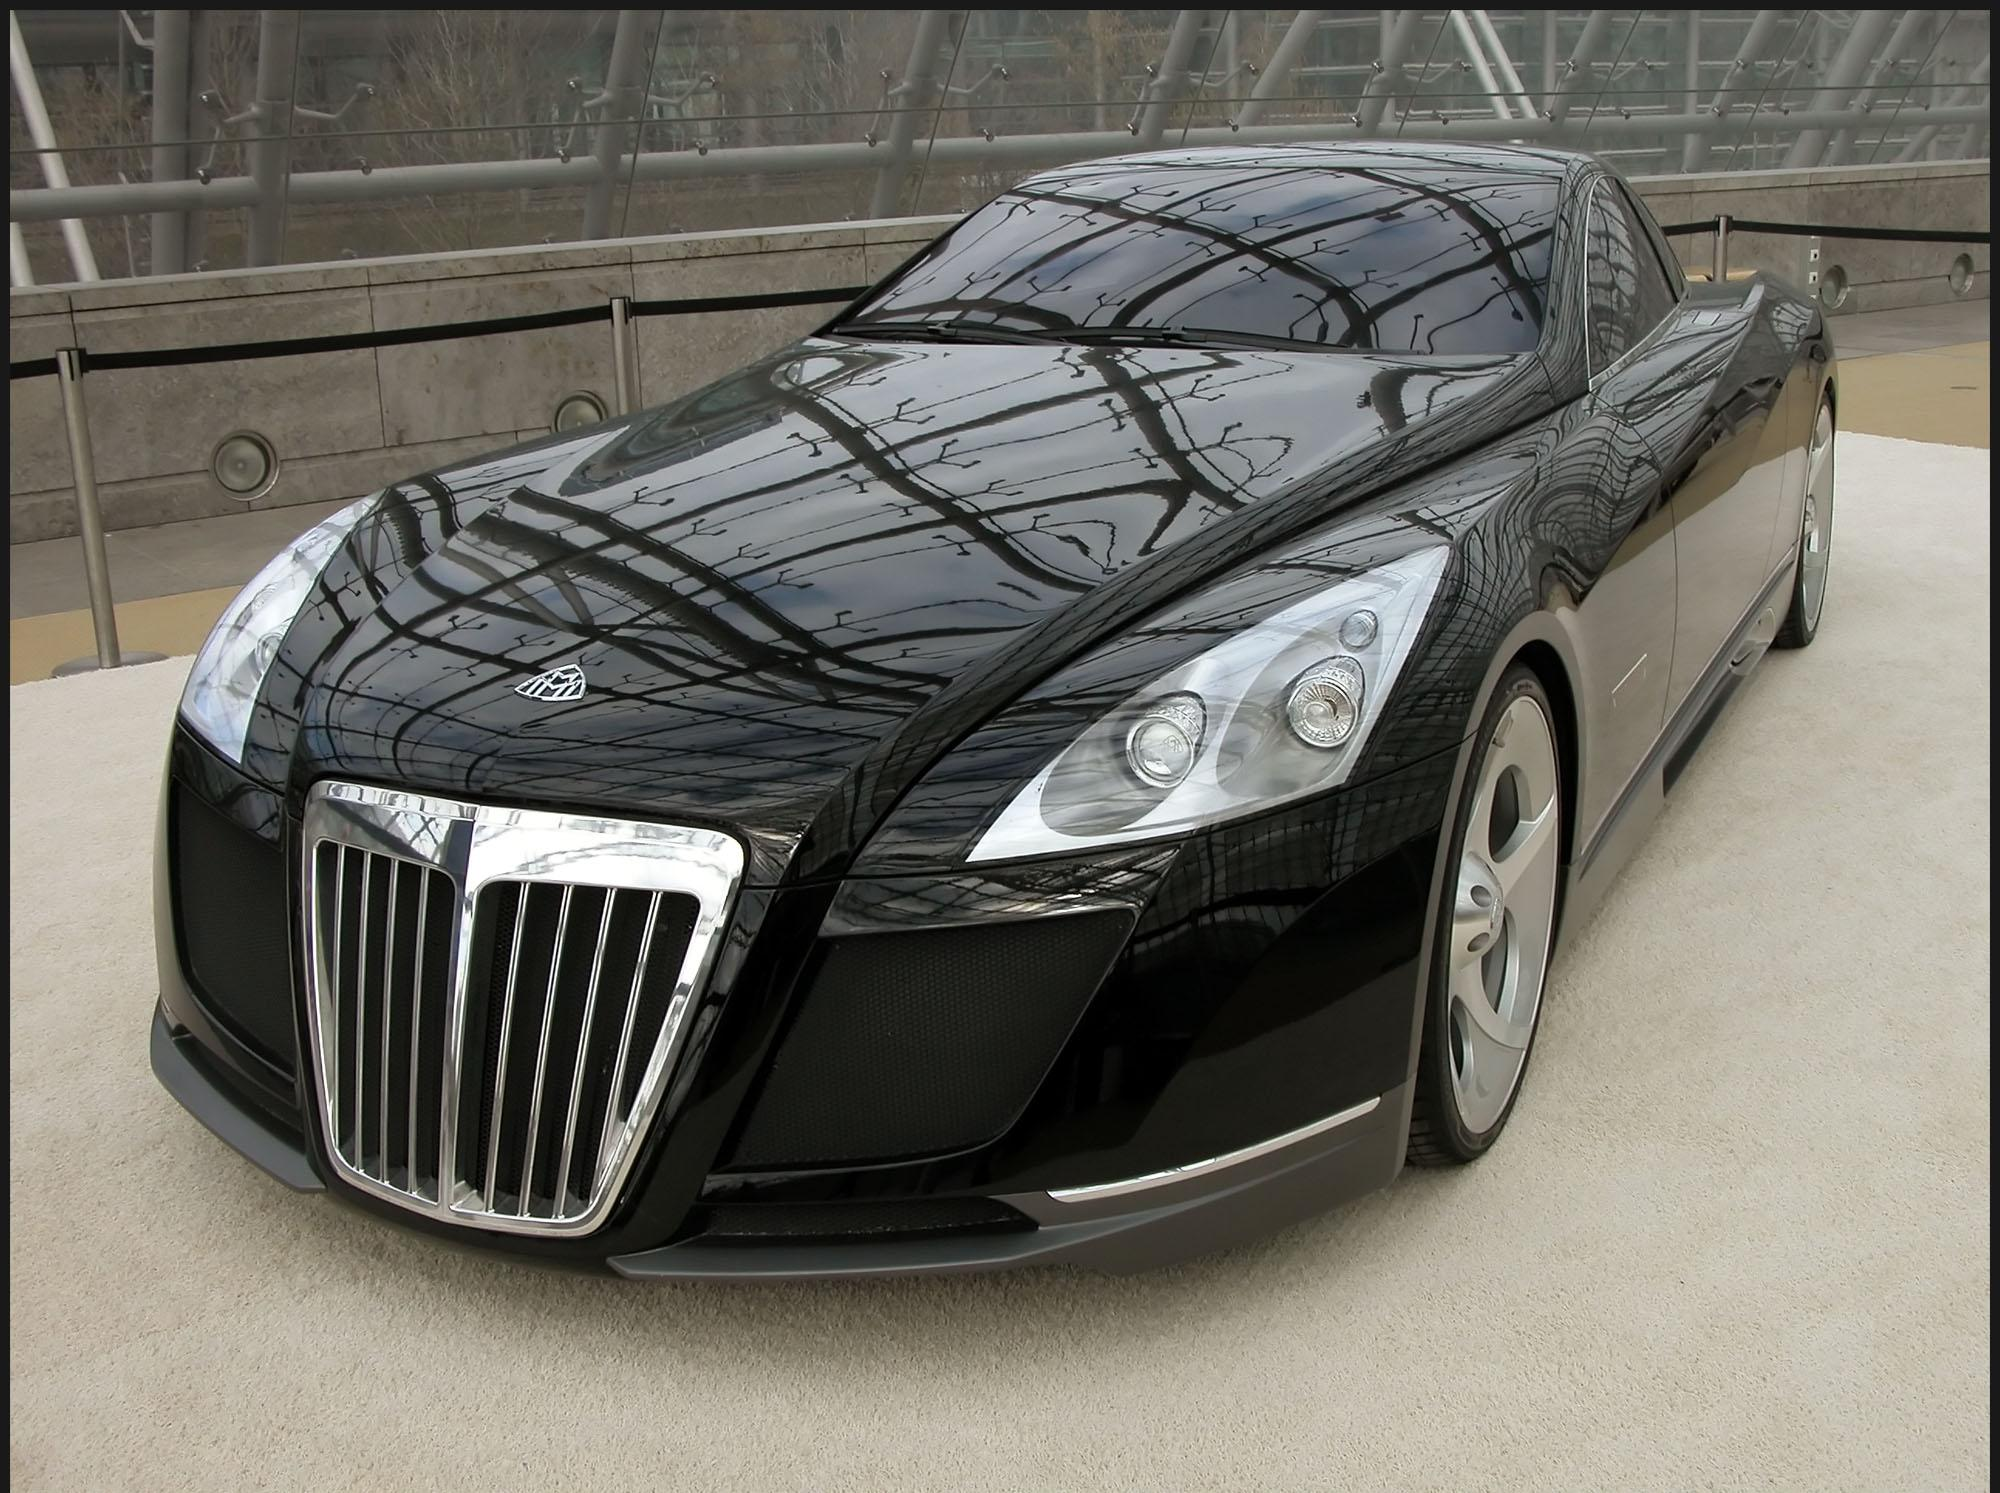 2005 Maybach Exelero Gallery 51306 | Top Speed